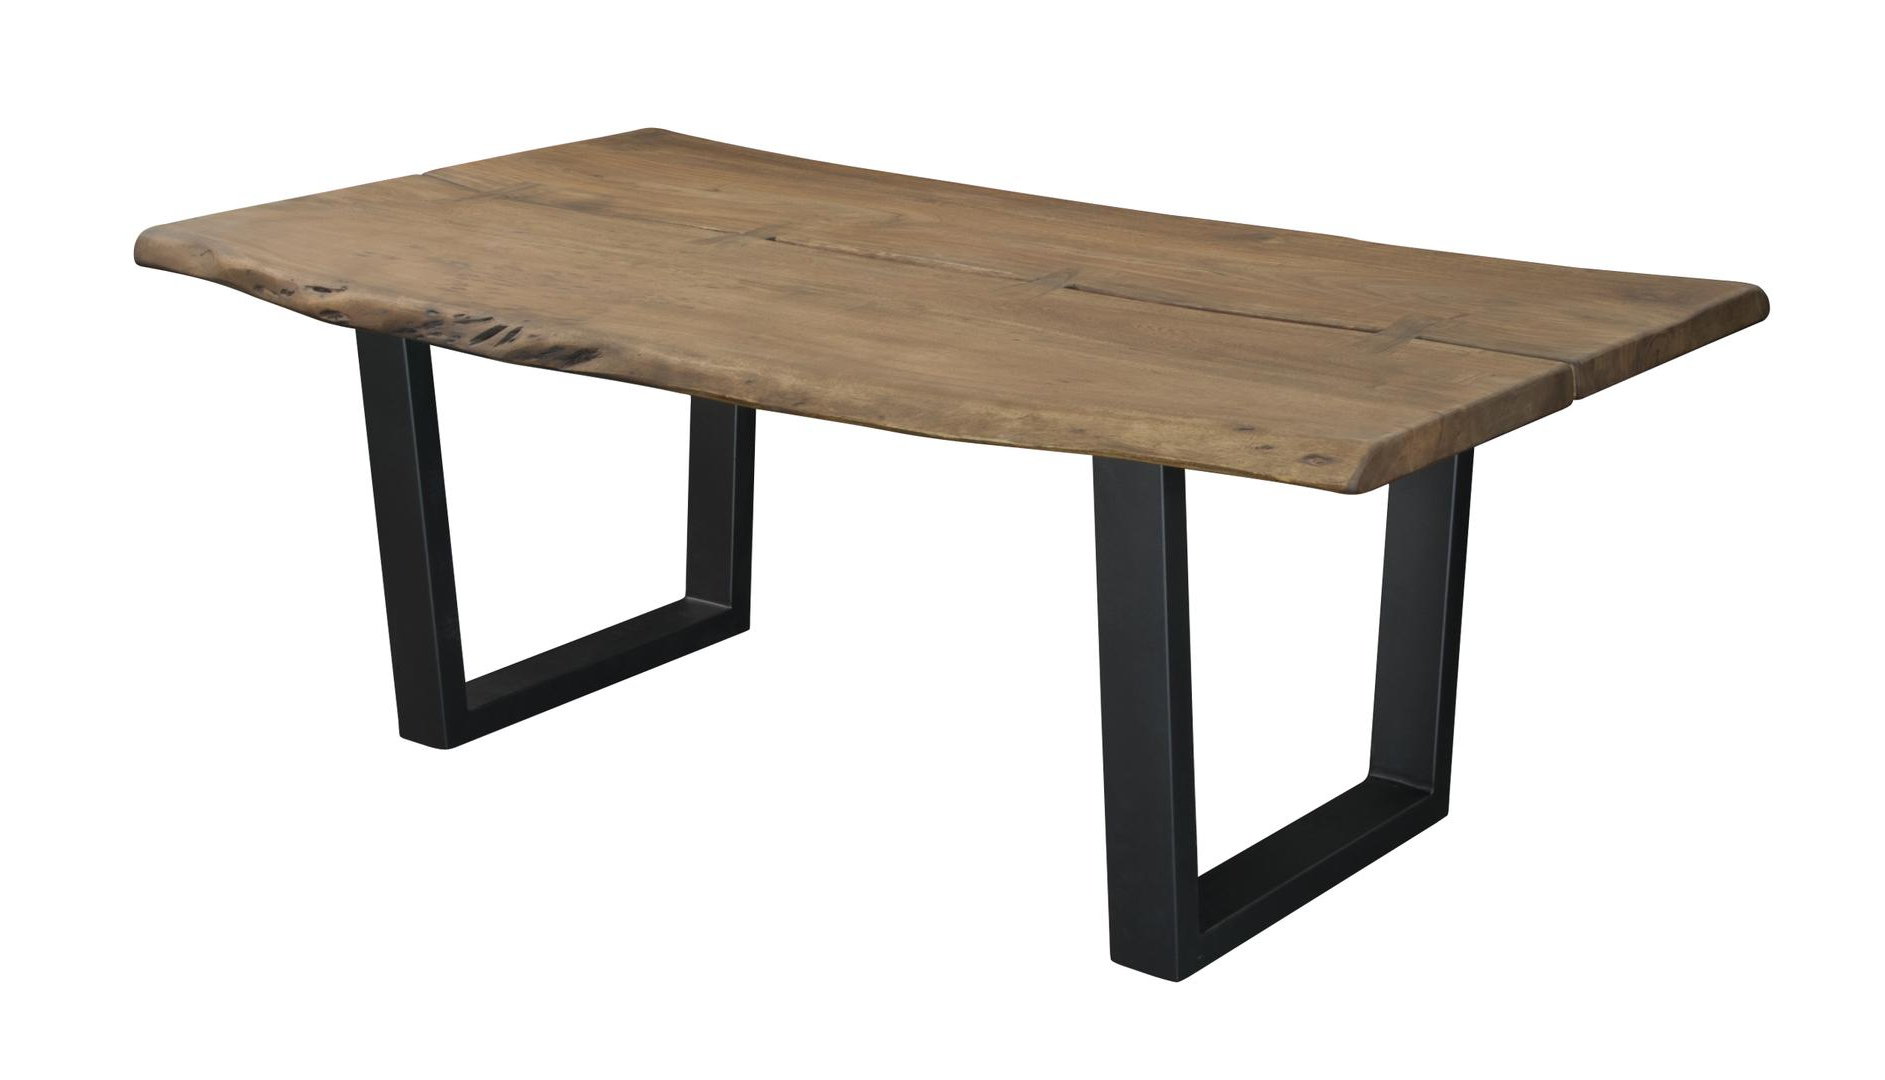 Acacia Top Dining Tables With Metal Legs For 2020 Coast To Coast  (View 4 of 25)